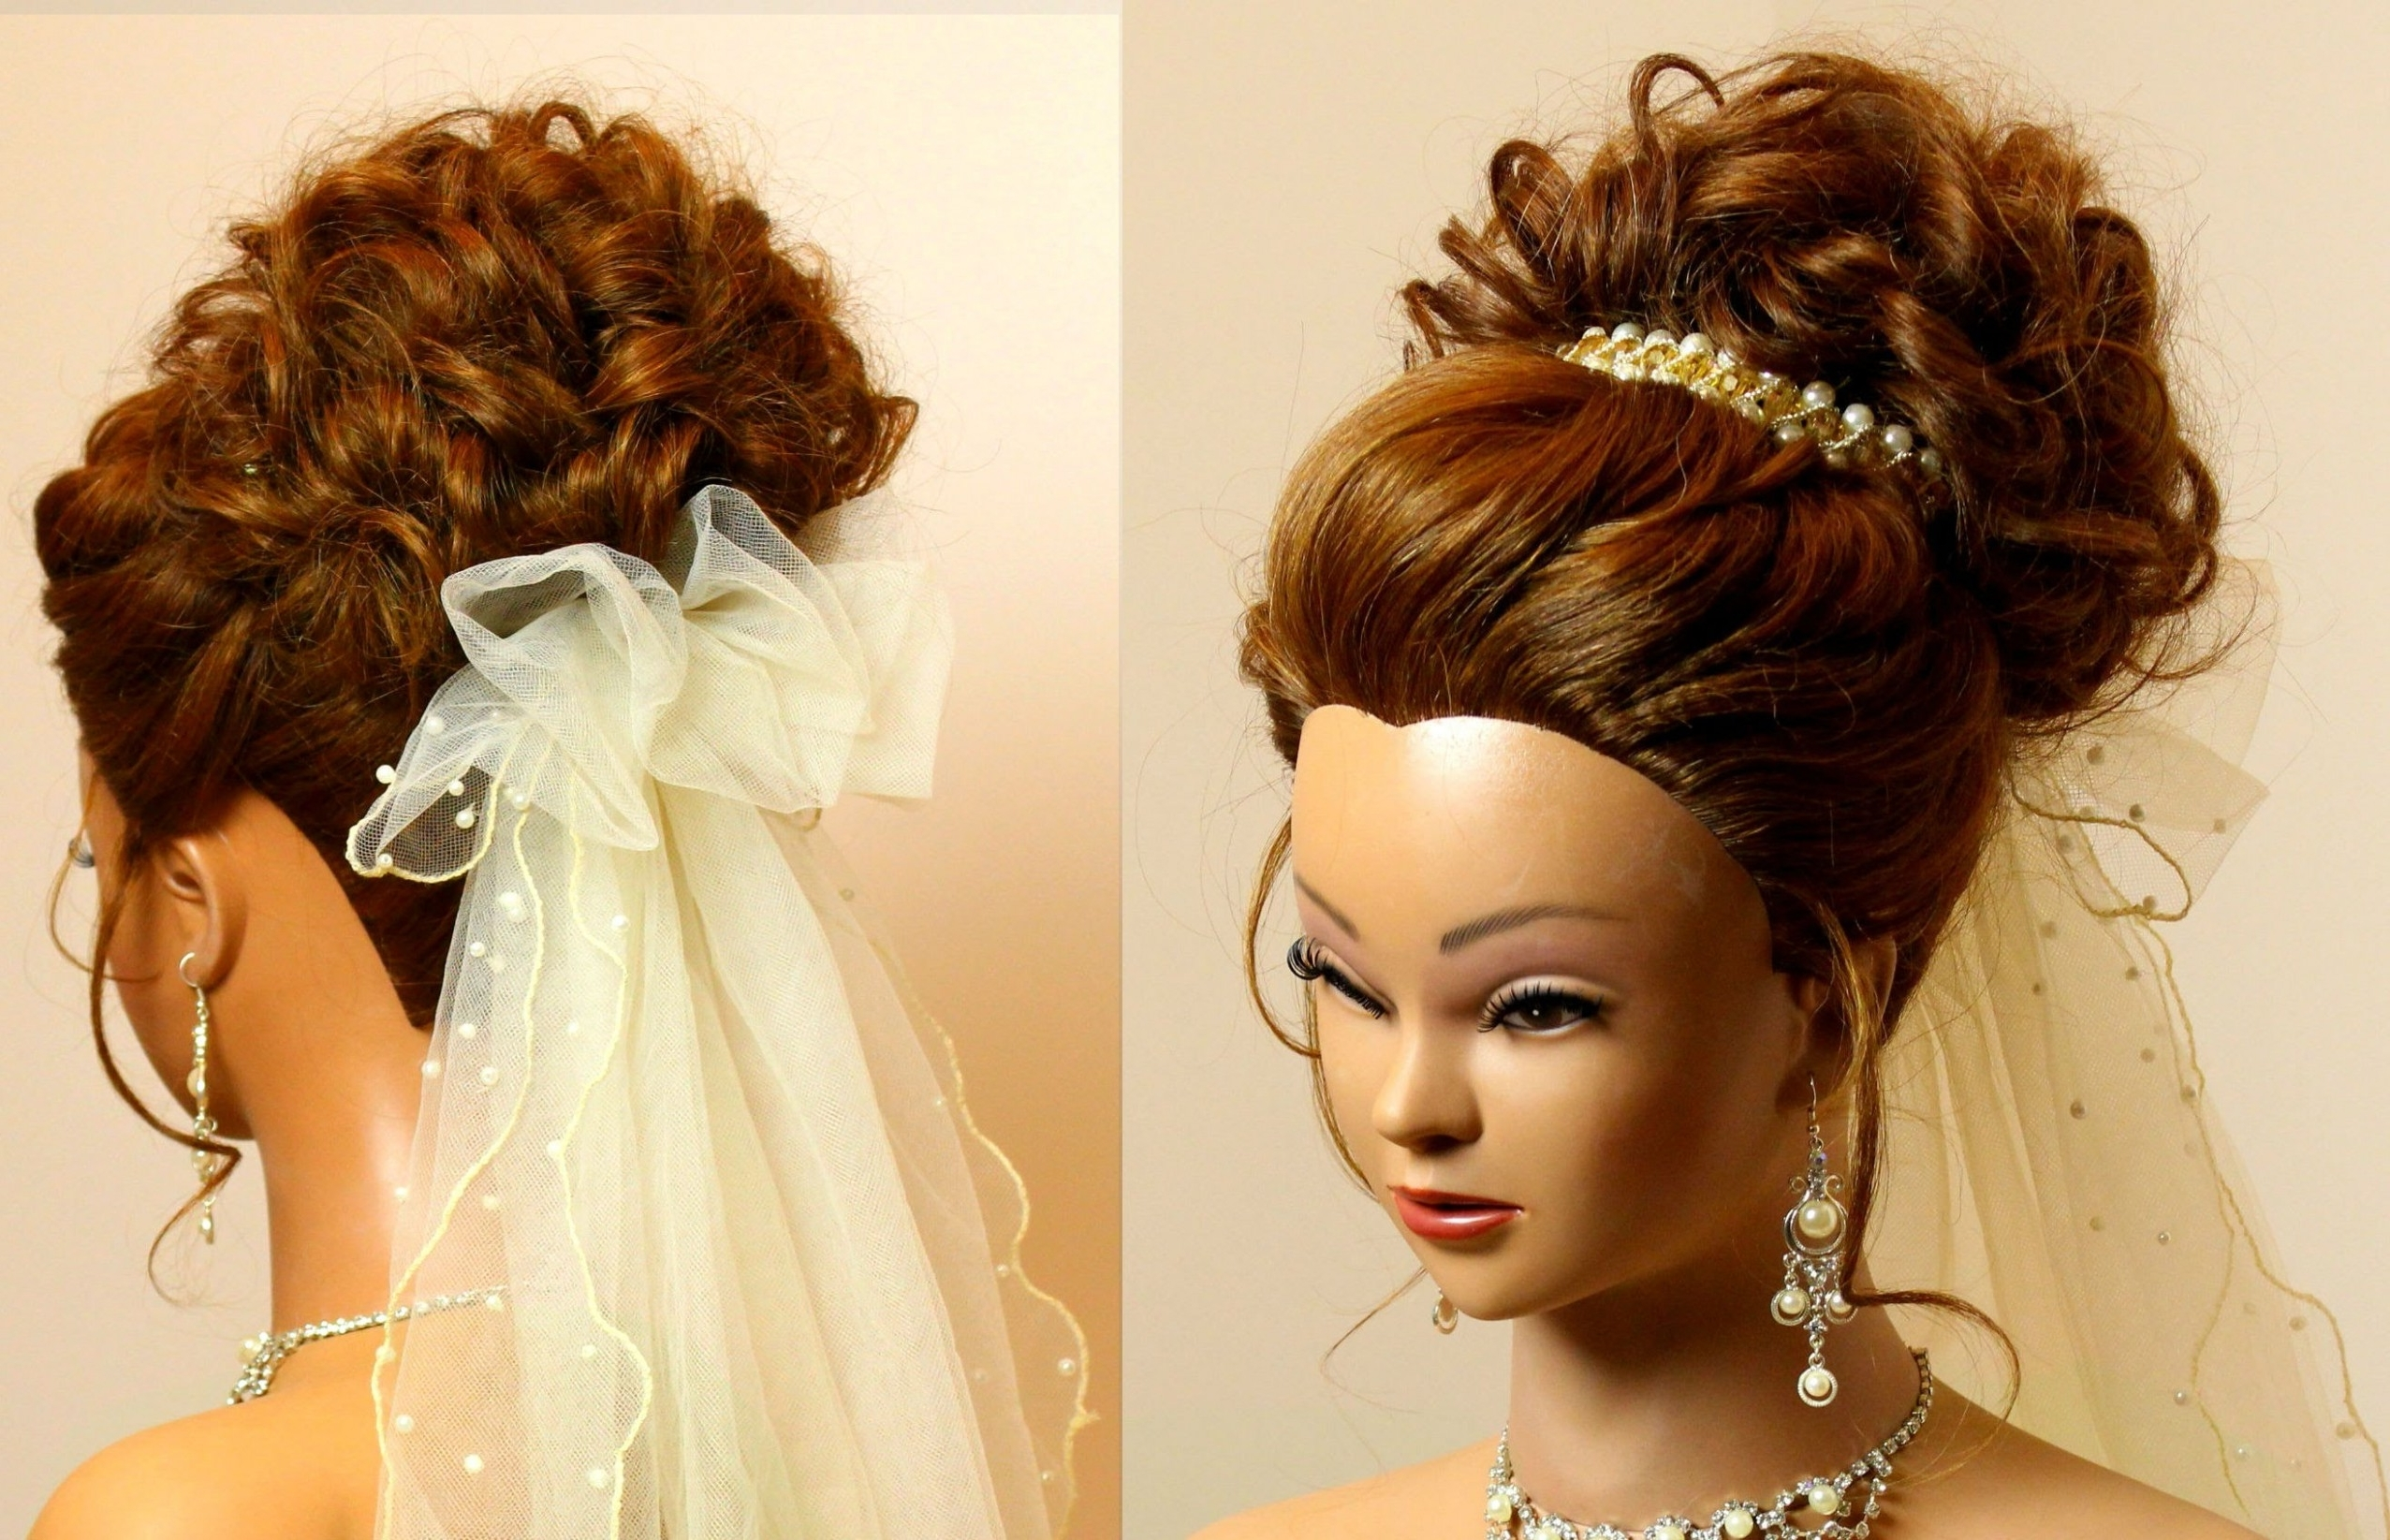 41 Things You Should Do In Wedding Updo Hairstyles | With Regard To Updo Hairstyles For Medium Hair (View 2 of 15)